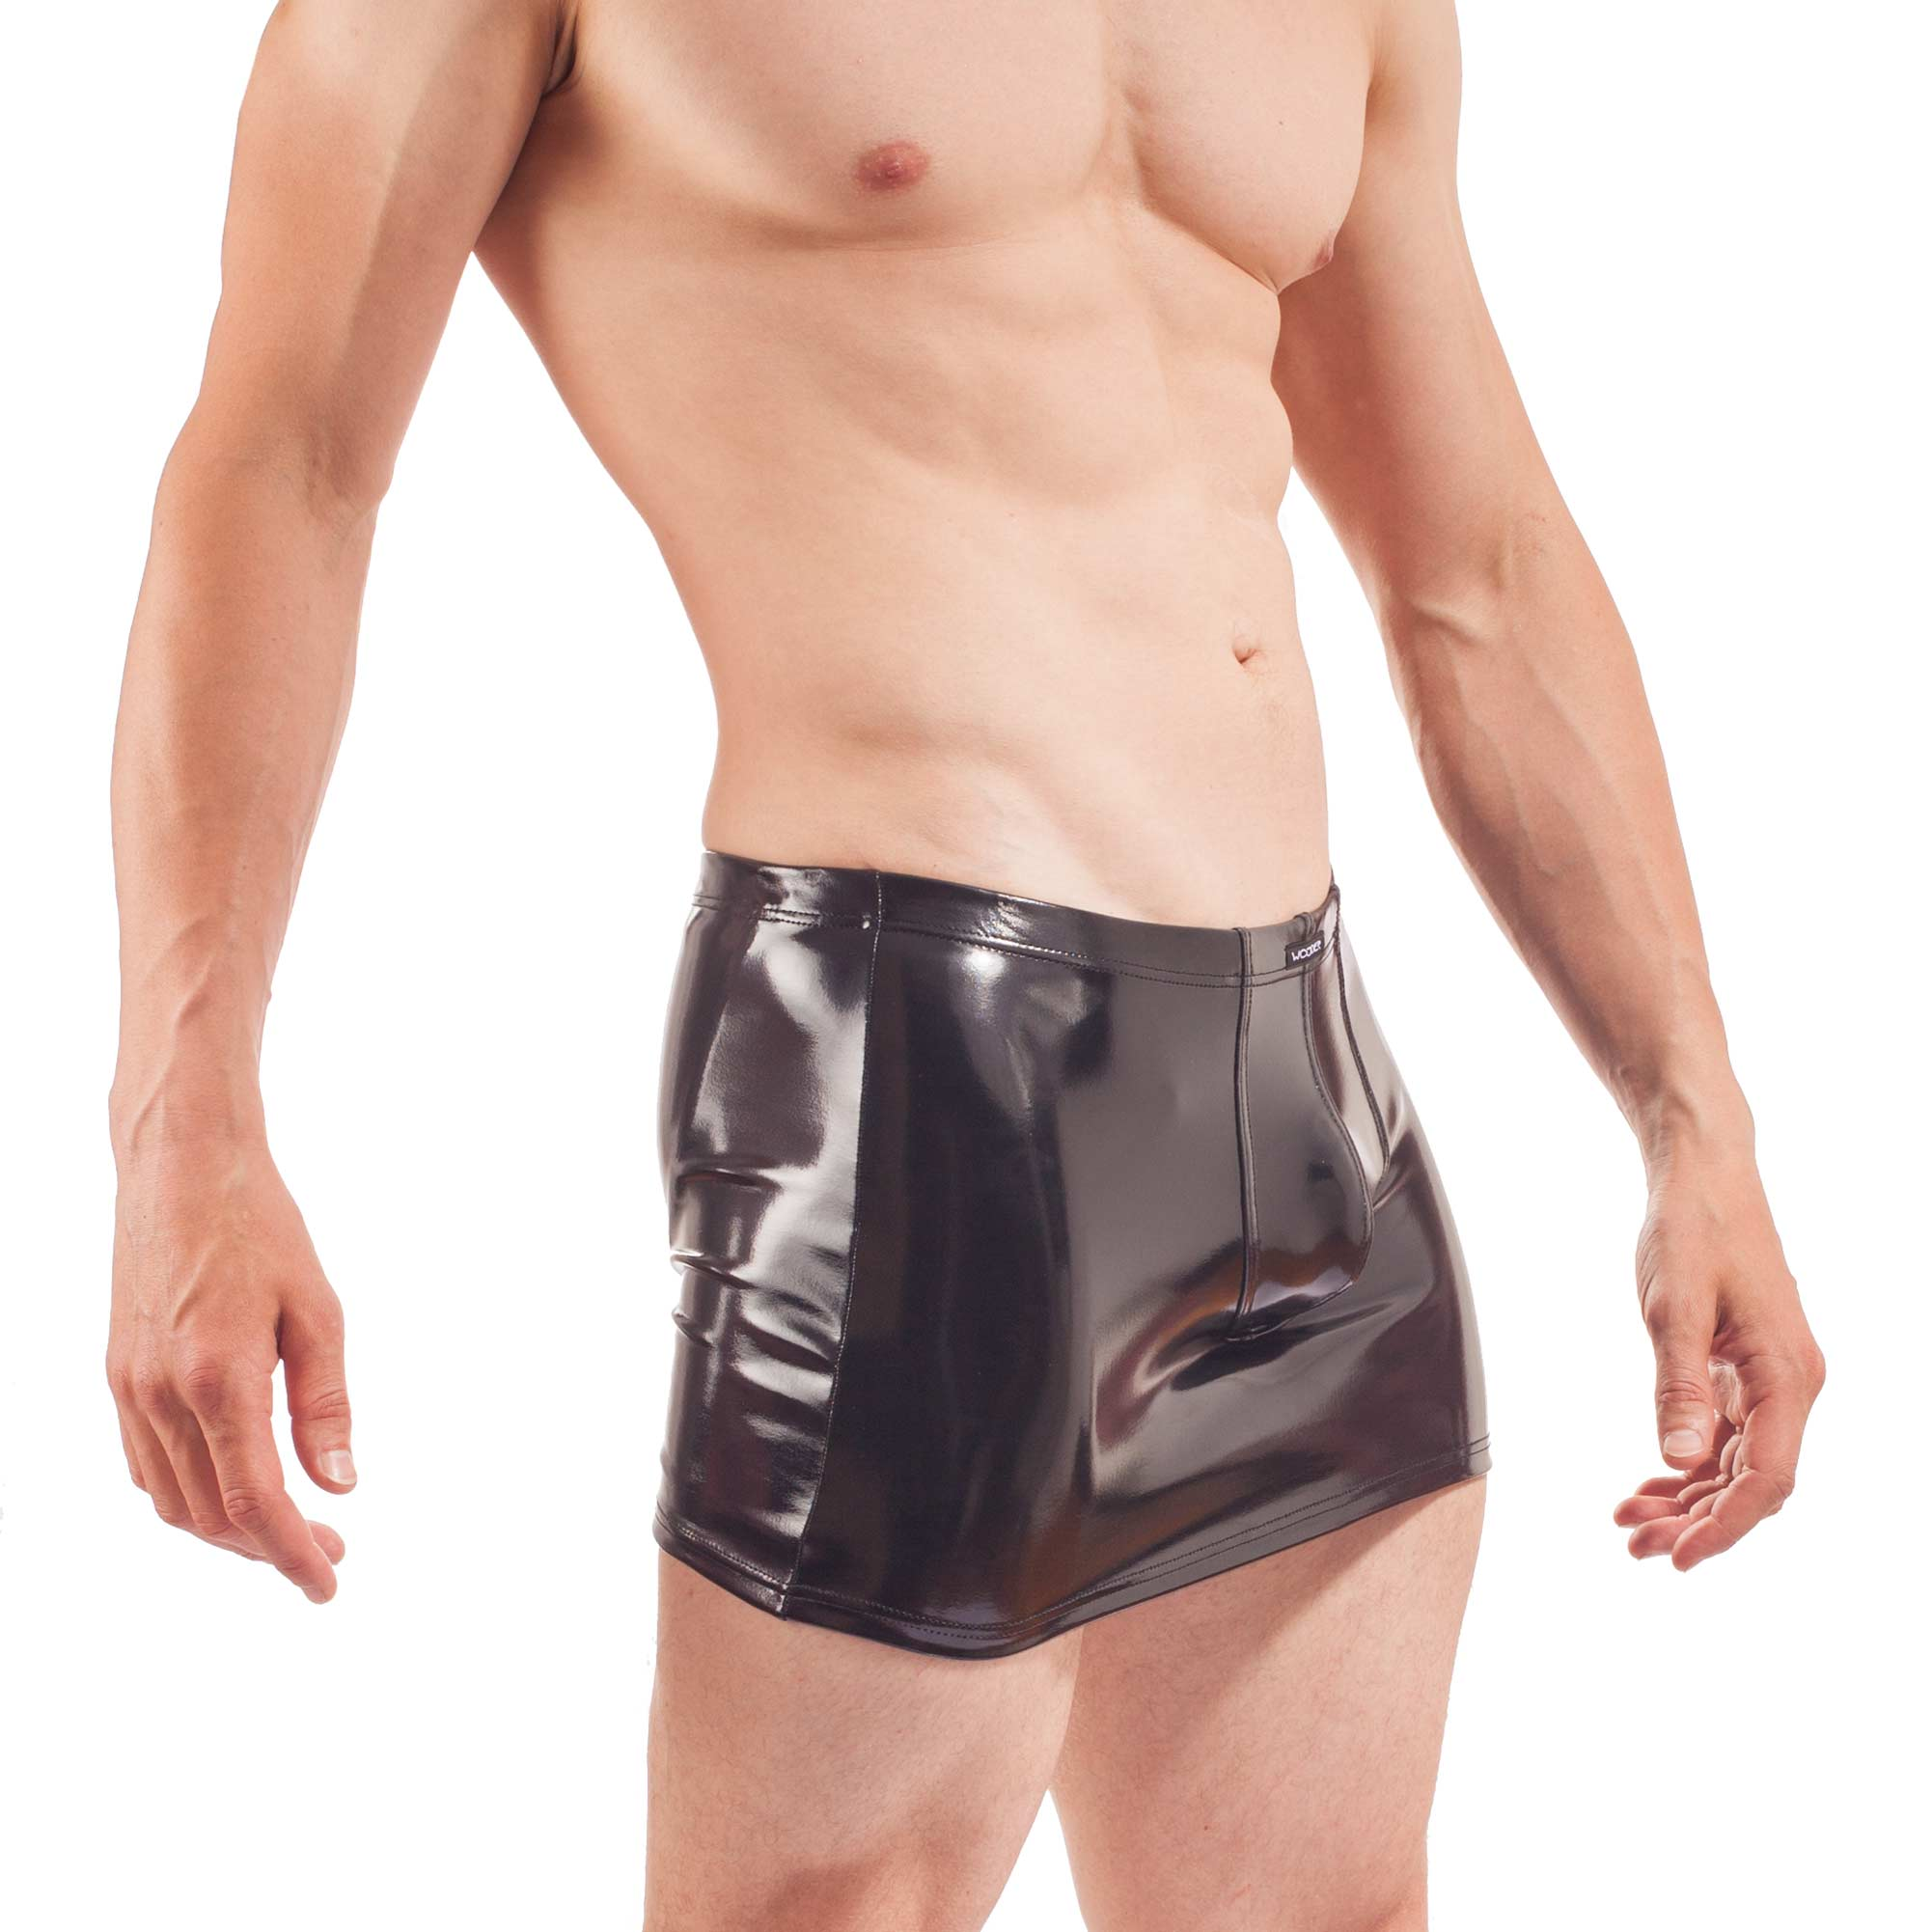 Herren Rock Jock, wet leather skirt, schwarzer lack, glossy Rock, Glanz Lack Rock mit Rockbändern und enges Suspensorium von Wojoer